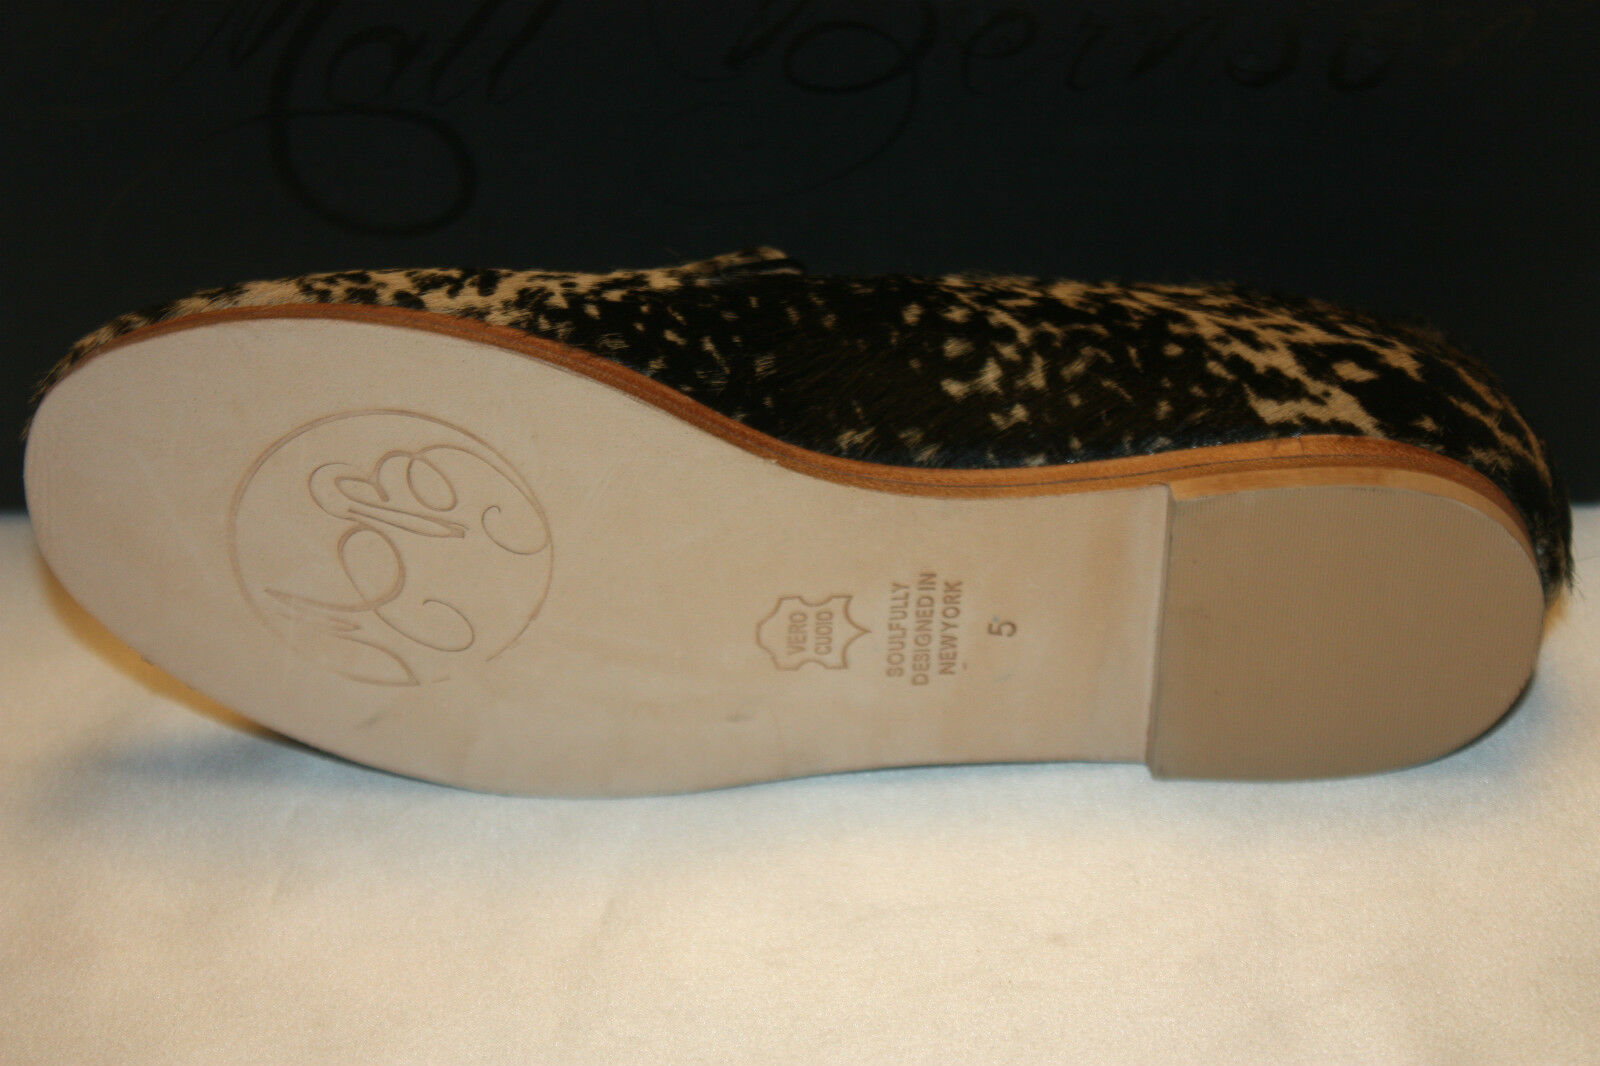 NEW NIB MATT BERNSON Calf Leopard Calf BERNSON Hair Pony GITANES Smoking Schuhes Loafers 5 168 33aa43